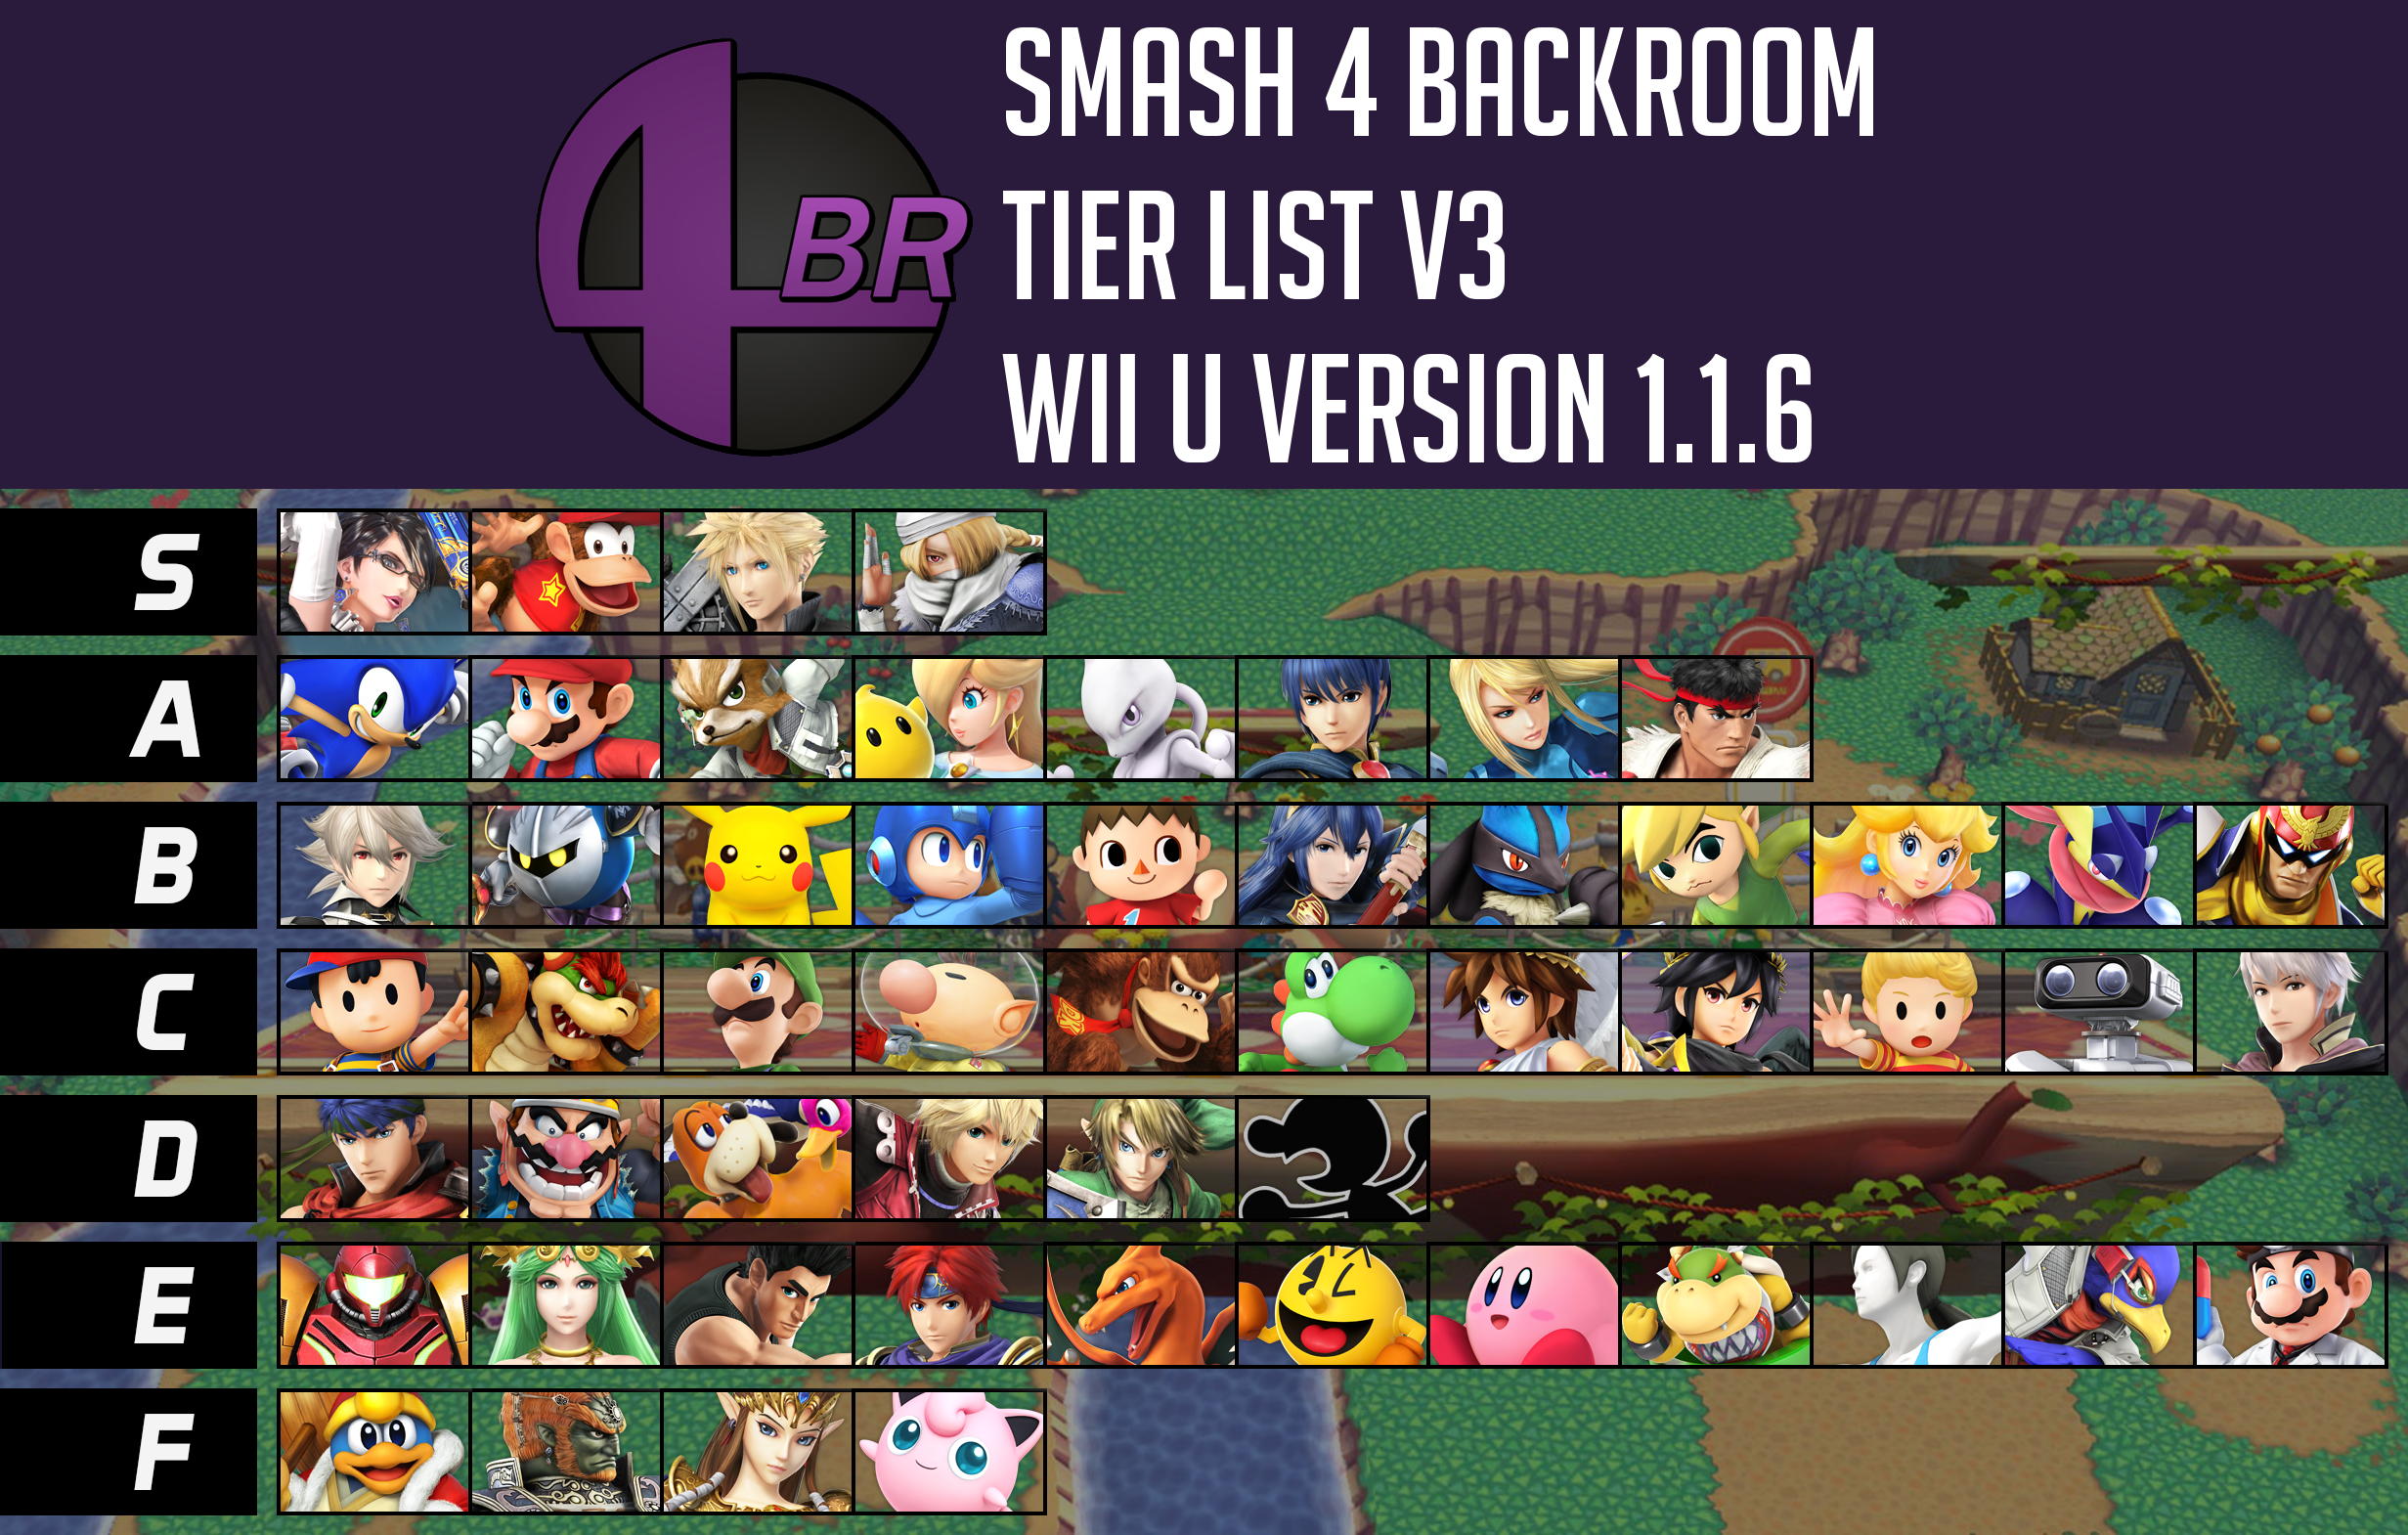 smash 4 backroom tier list v3 2.png